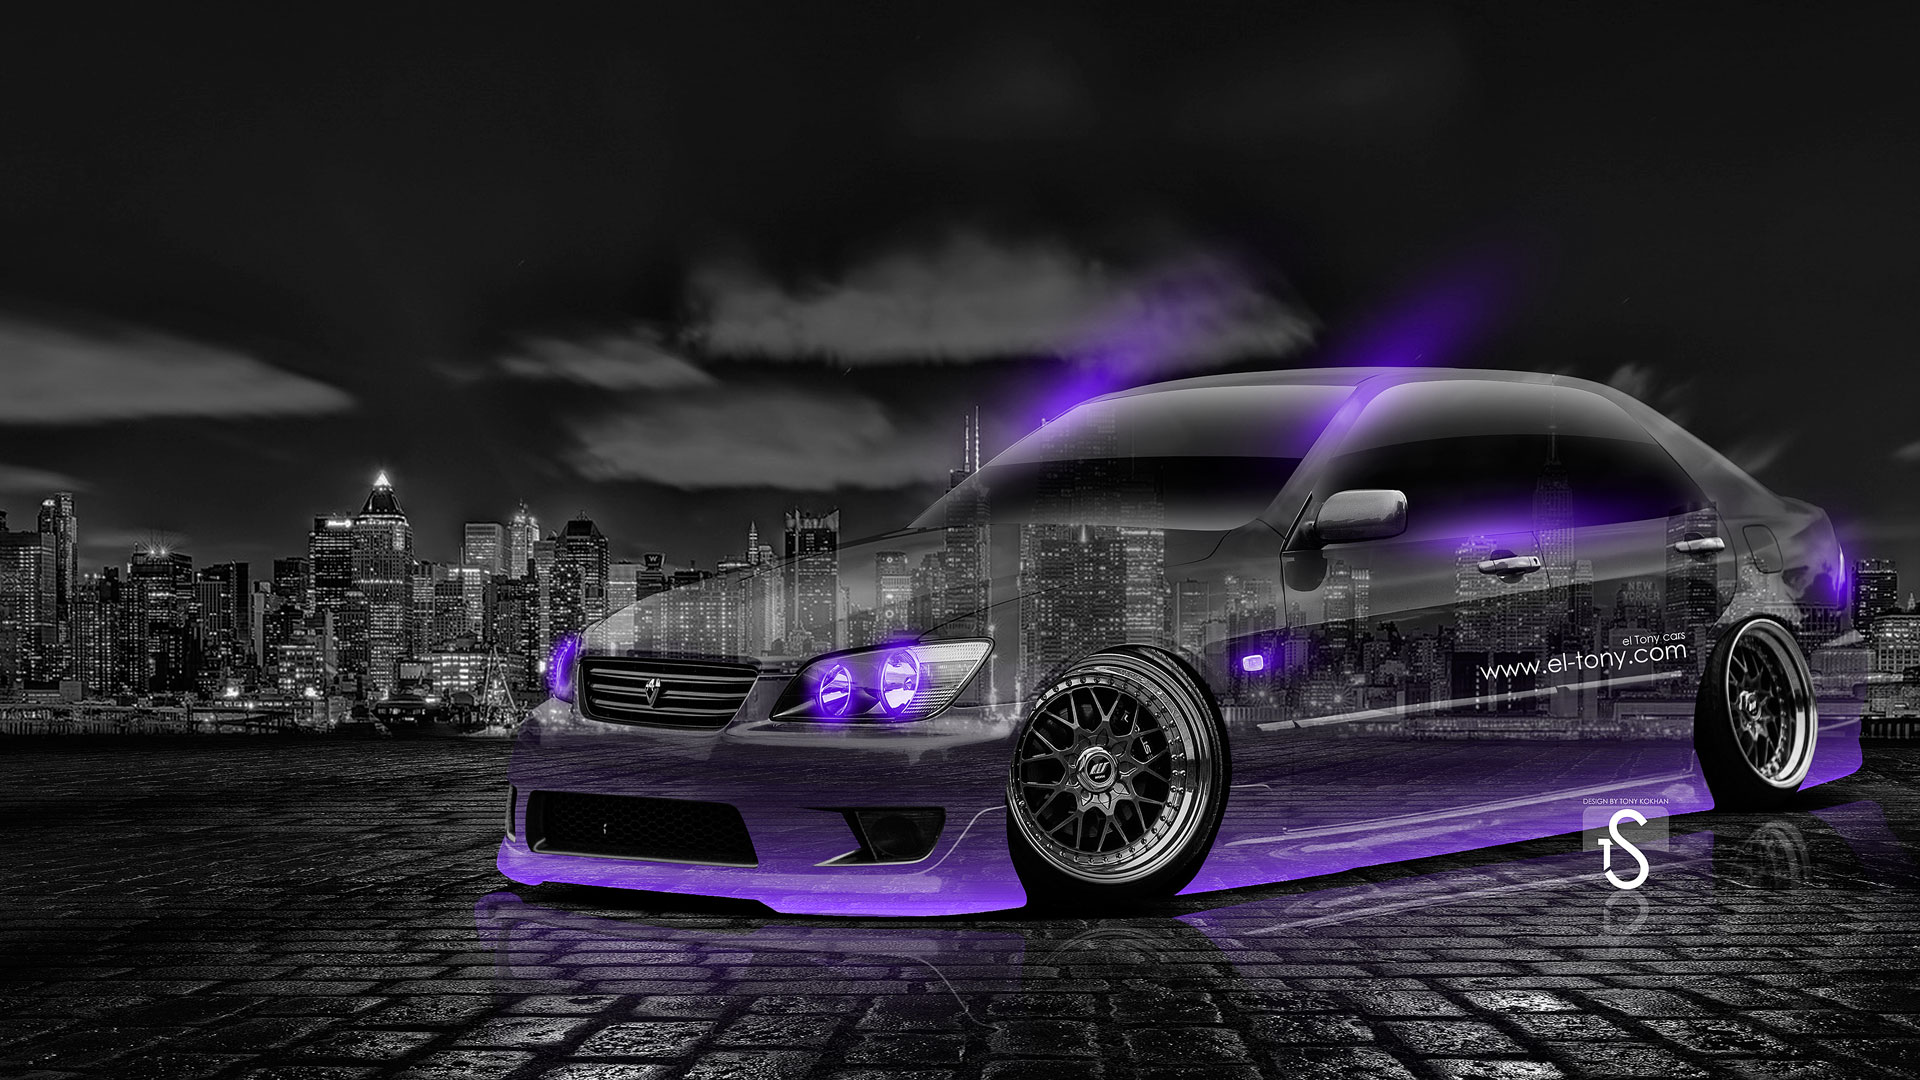 Awesome Toyota Altezza JDM Crystal City Car 2014 Violet